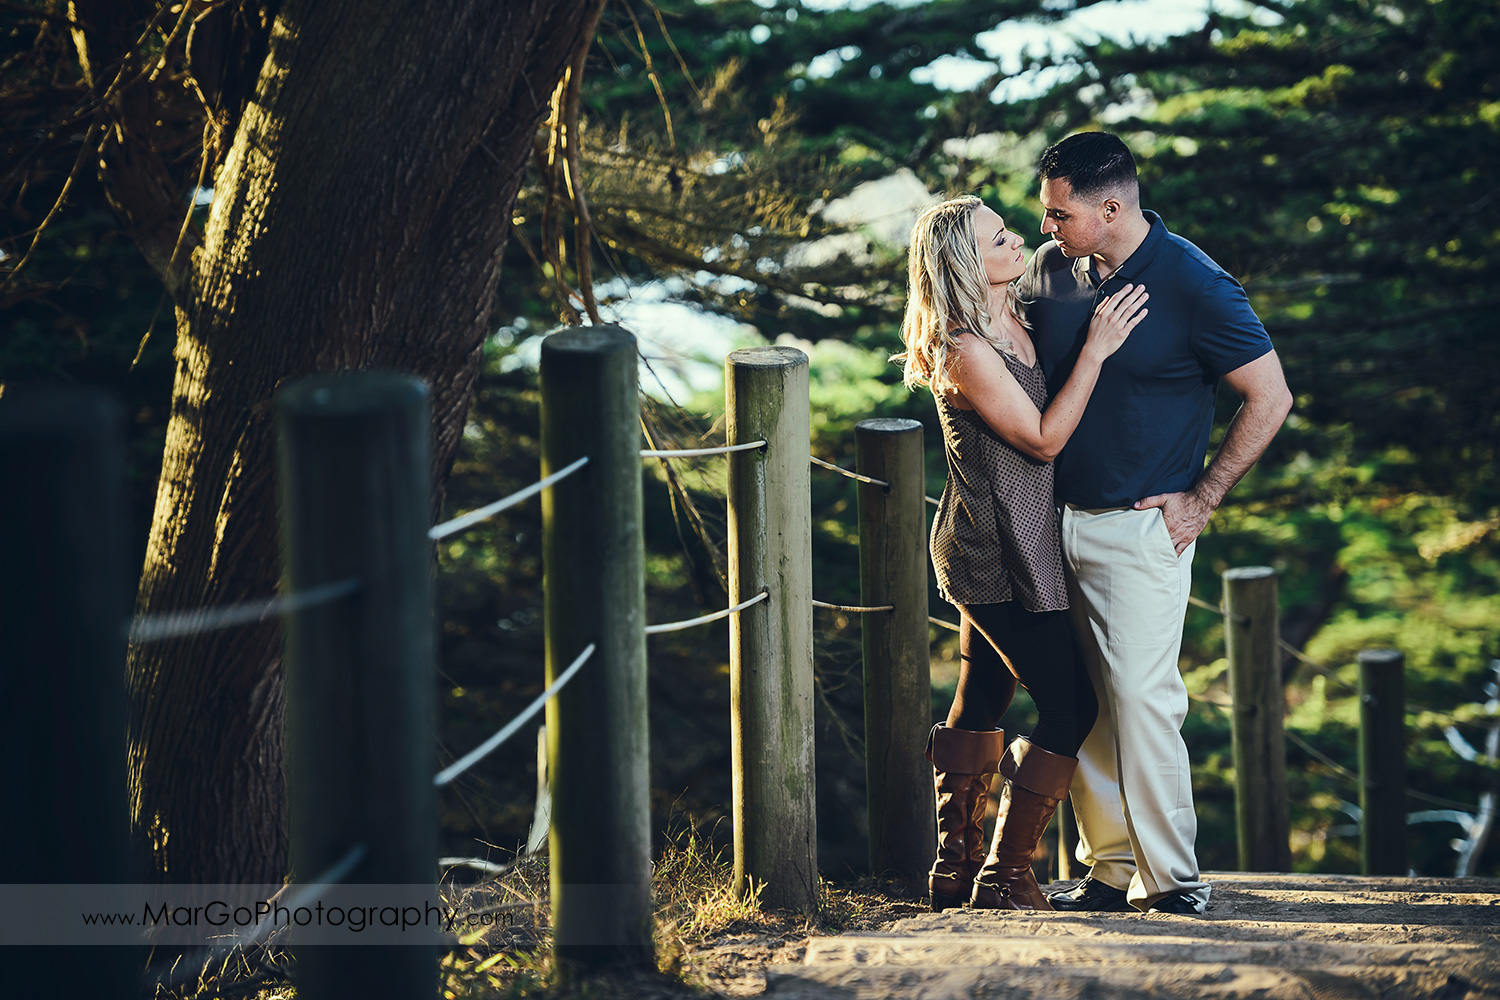 man in navy blue shirt and woman in brown tunic on the wooden stairs looking at each other during engagement session at San Francisco Lands End